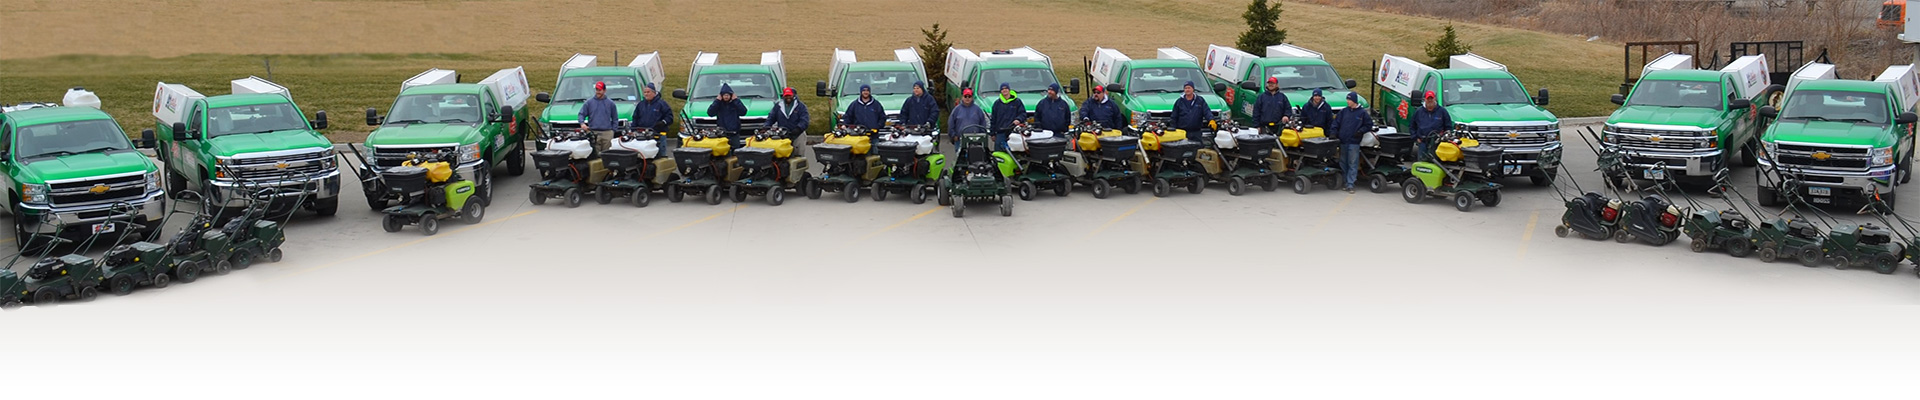 Some of our team and lawn care equipment.